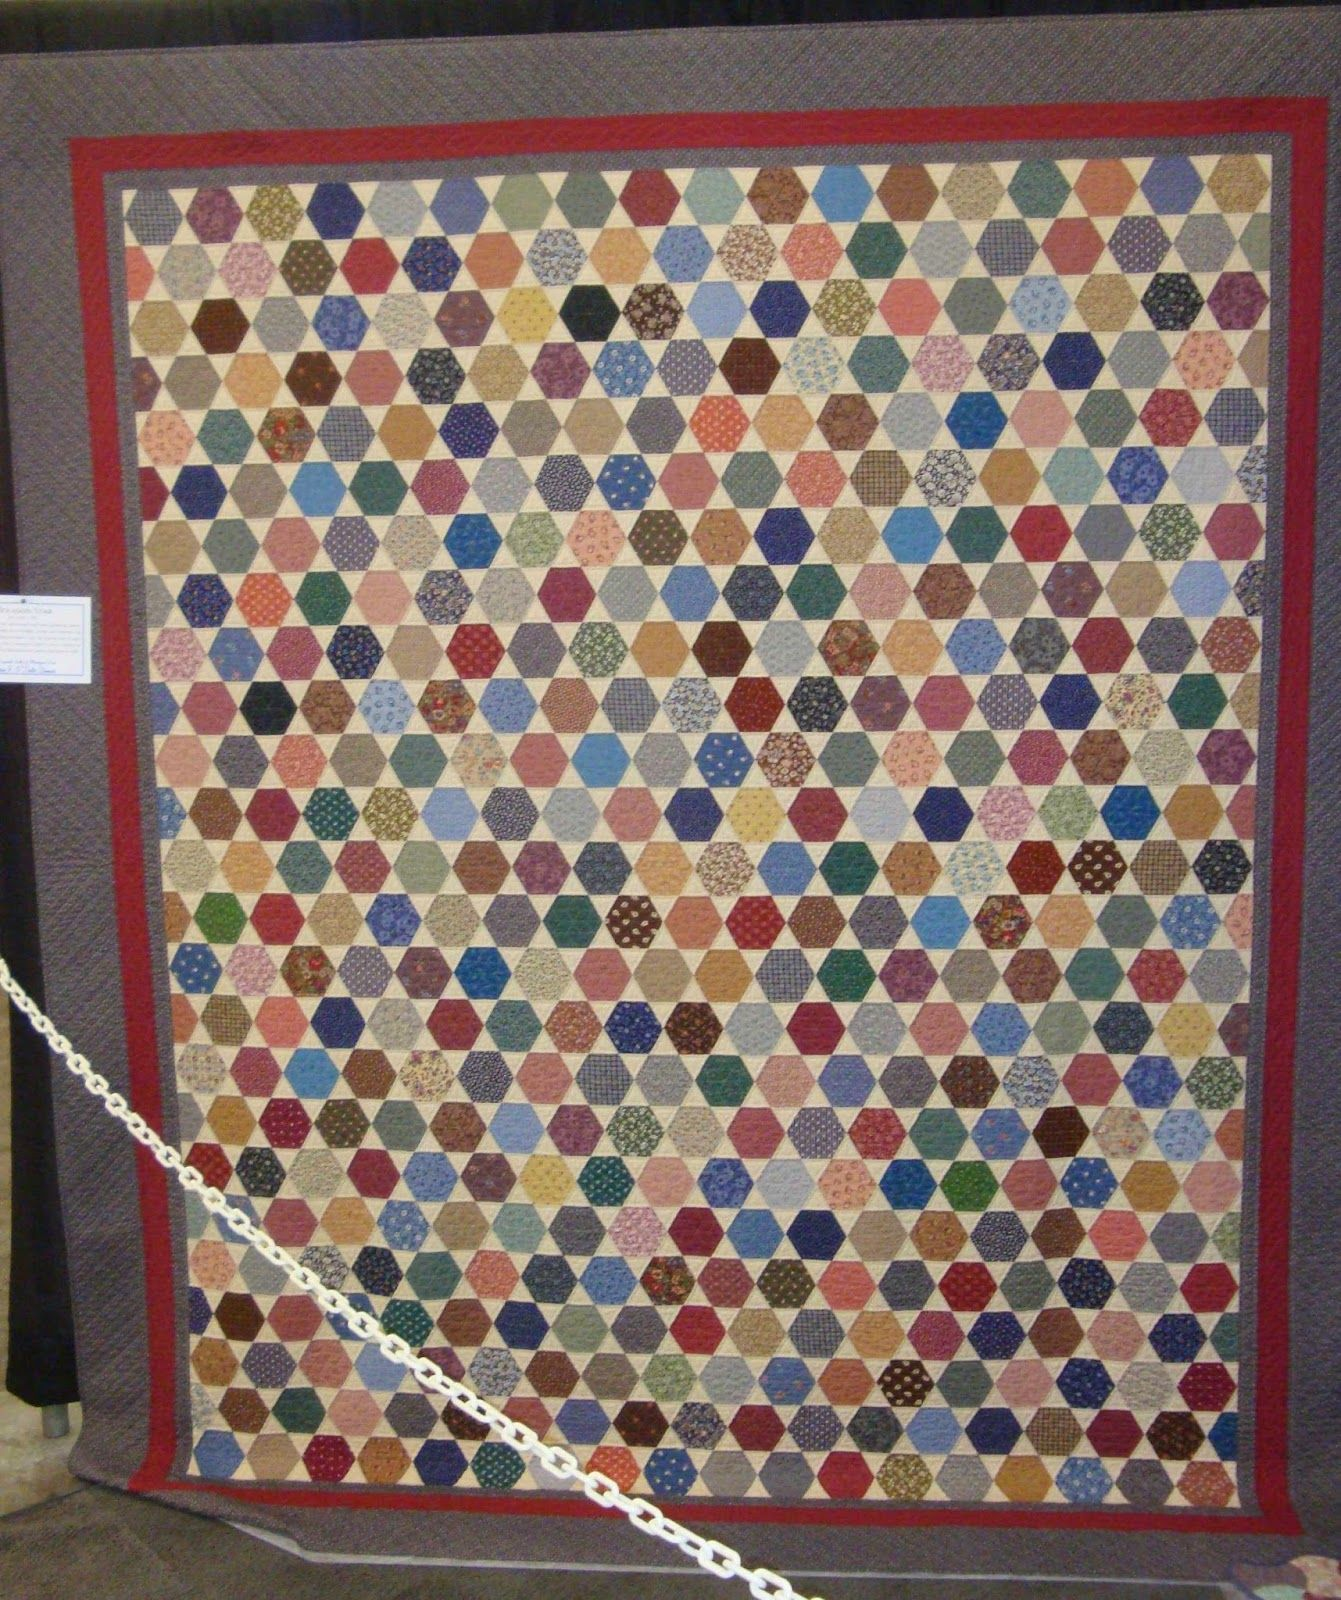 HEXAGON QUILT..............PC...............FABRIC THERAPY: 2014 AQS Grand Rapids Quilt Show...Part Five...